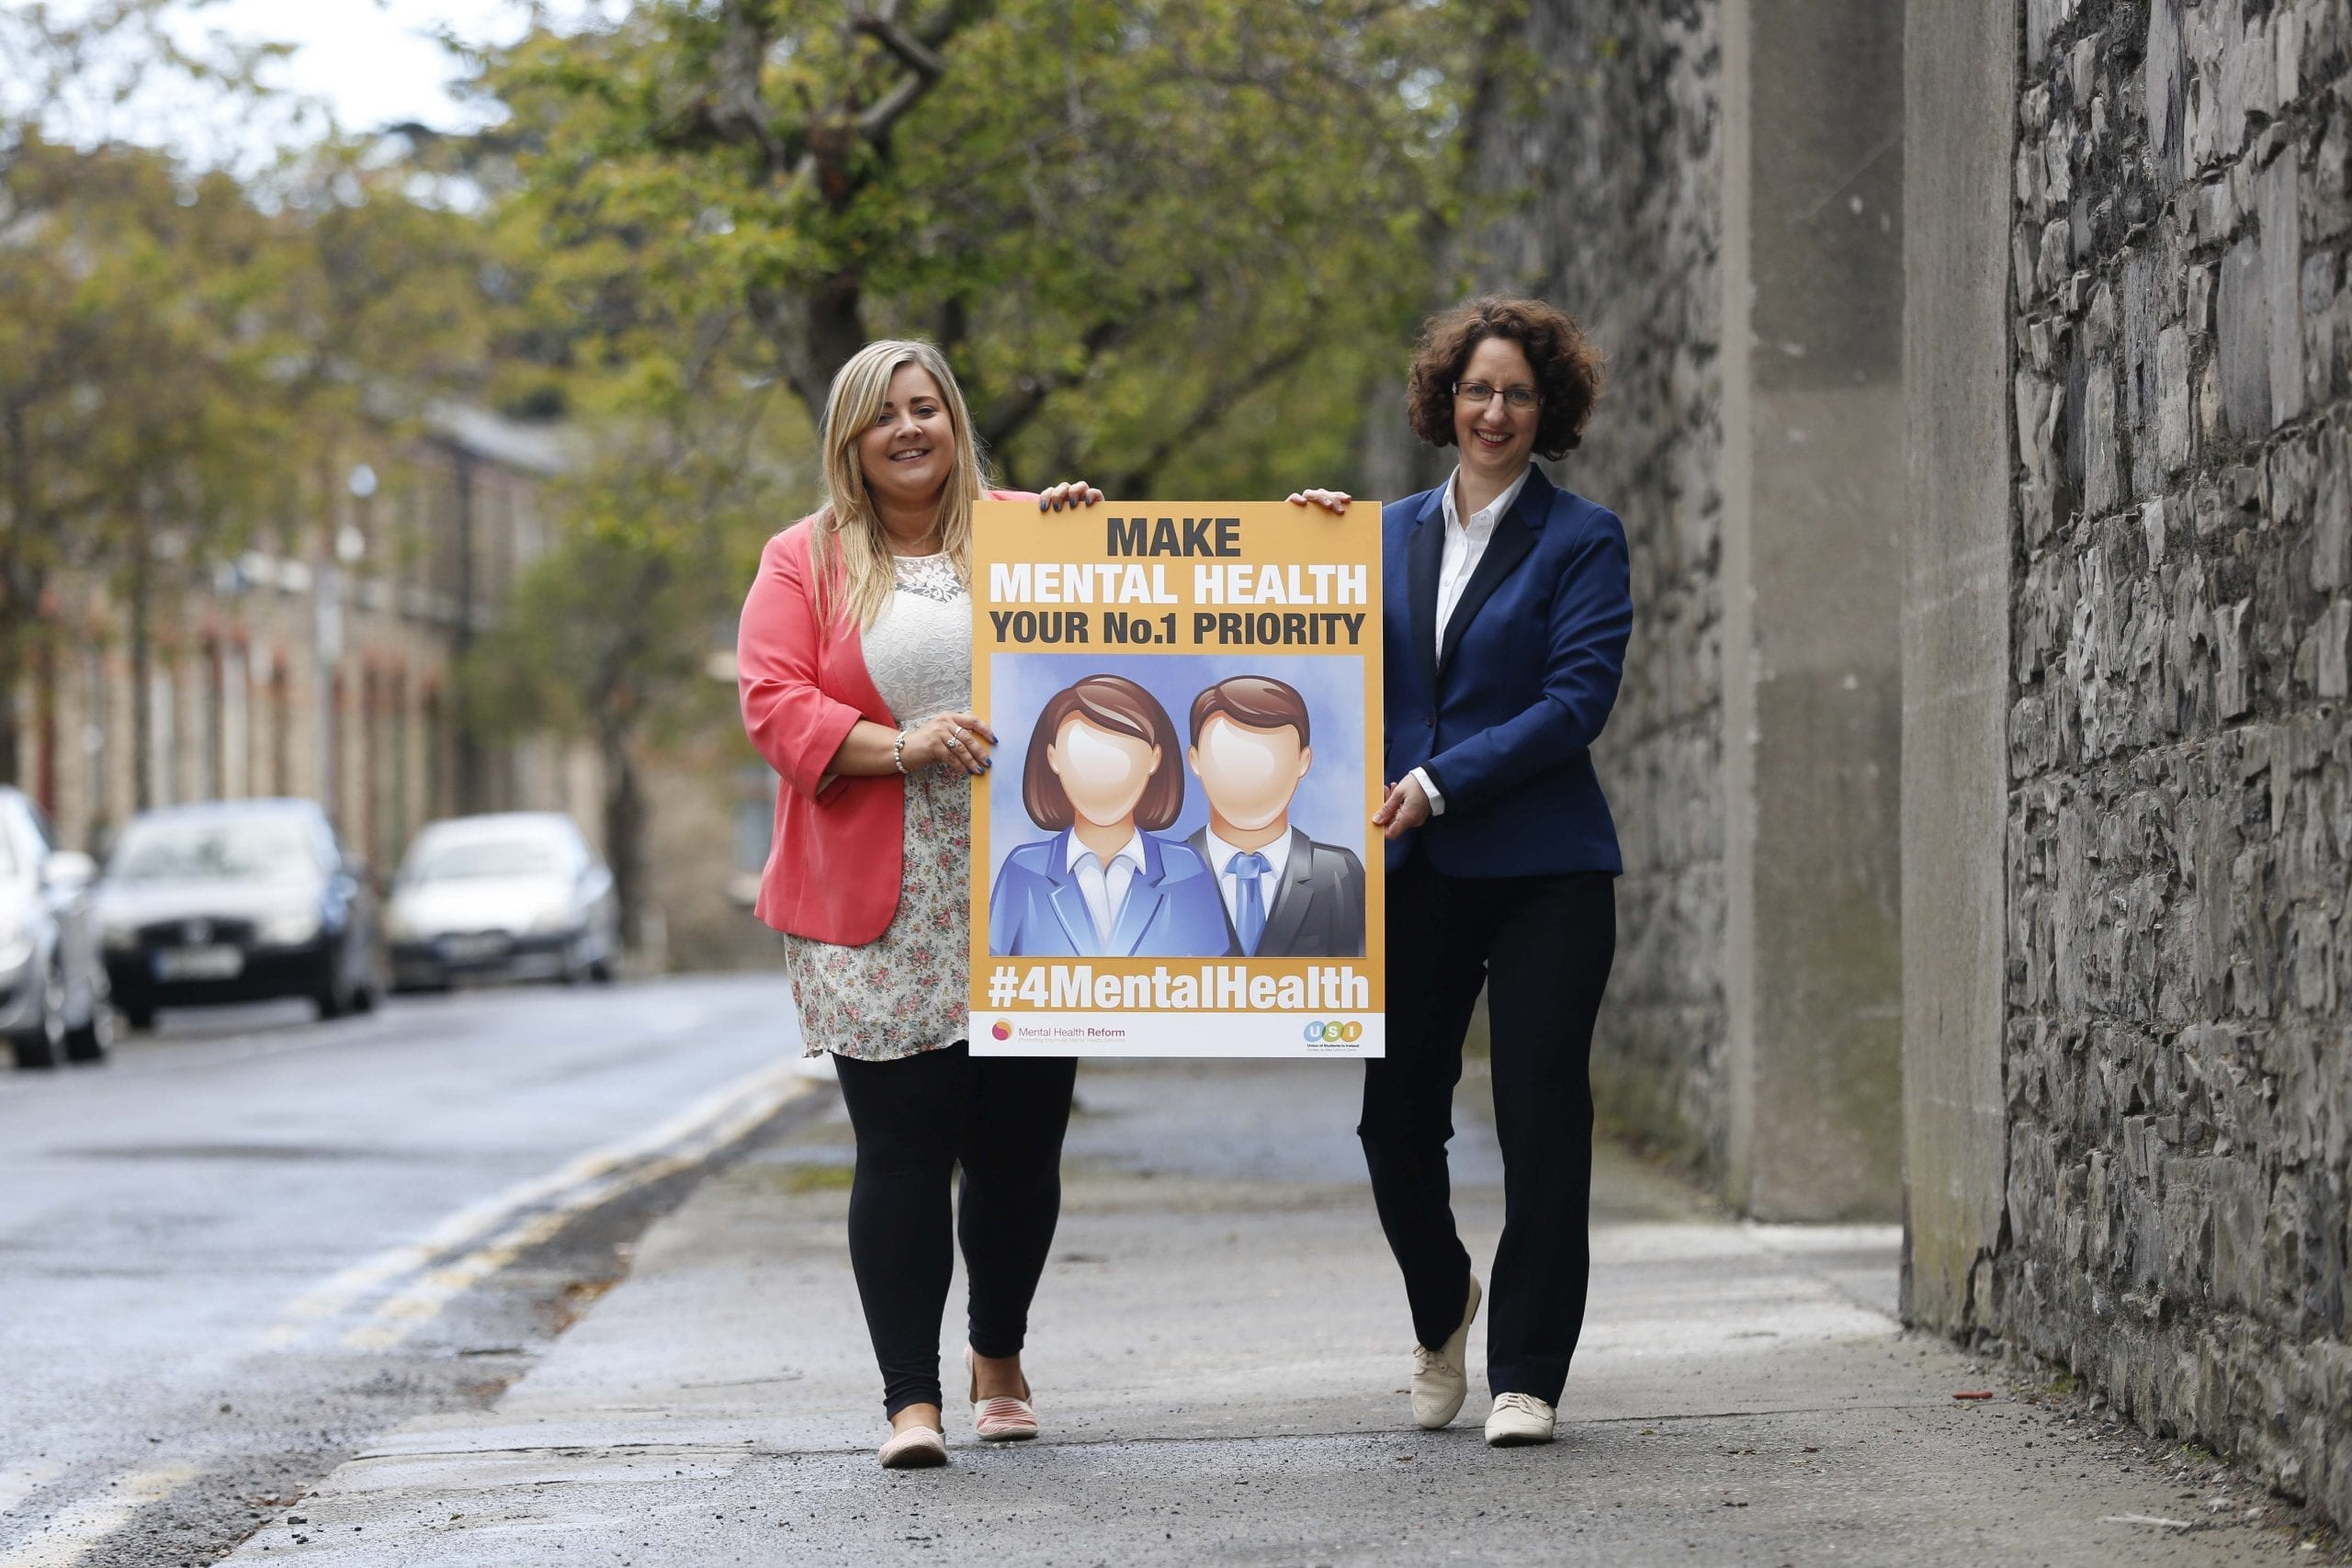 Local Election candidates asked to make mental health a priority